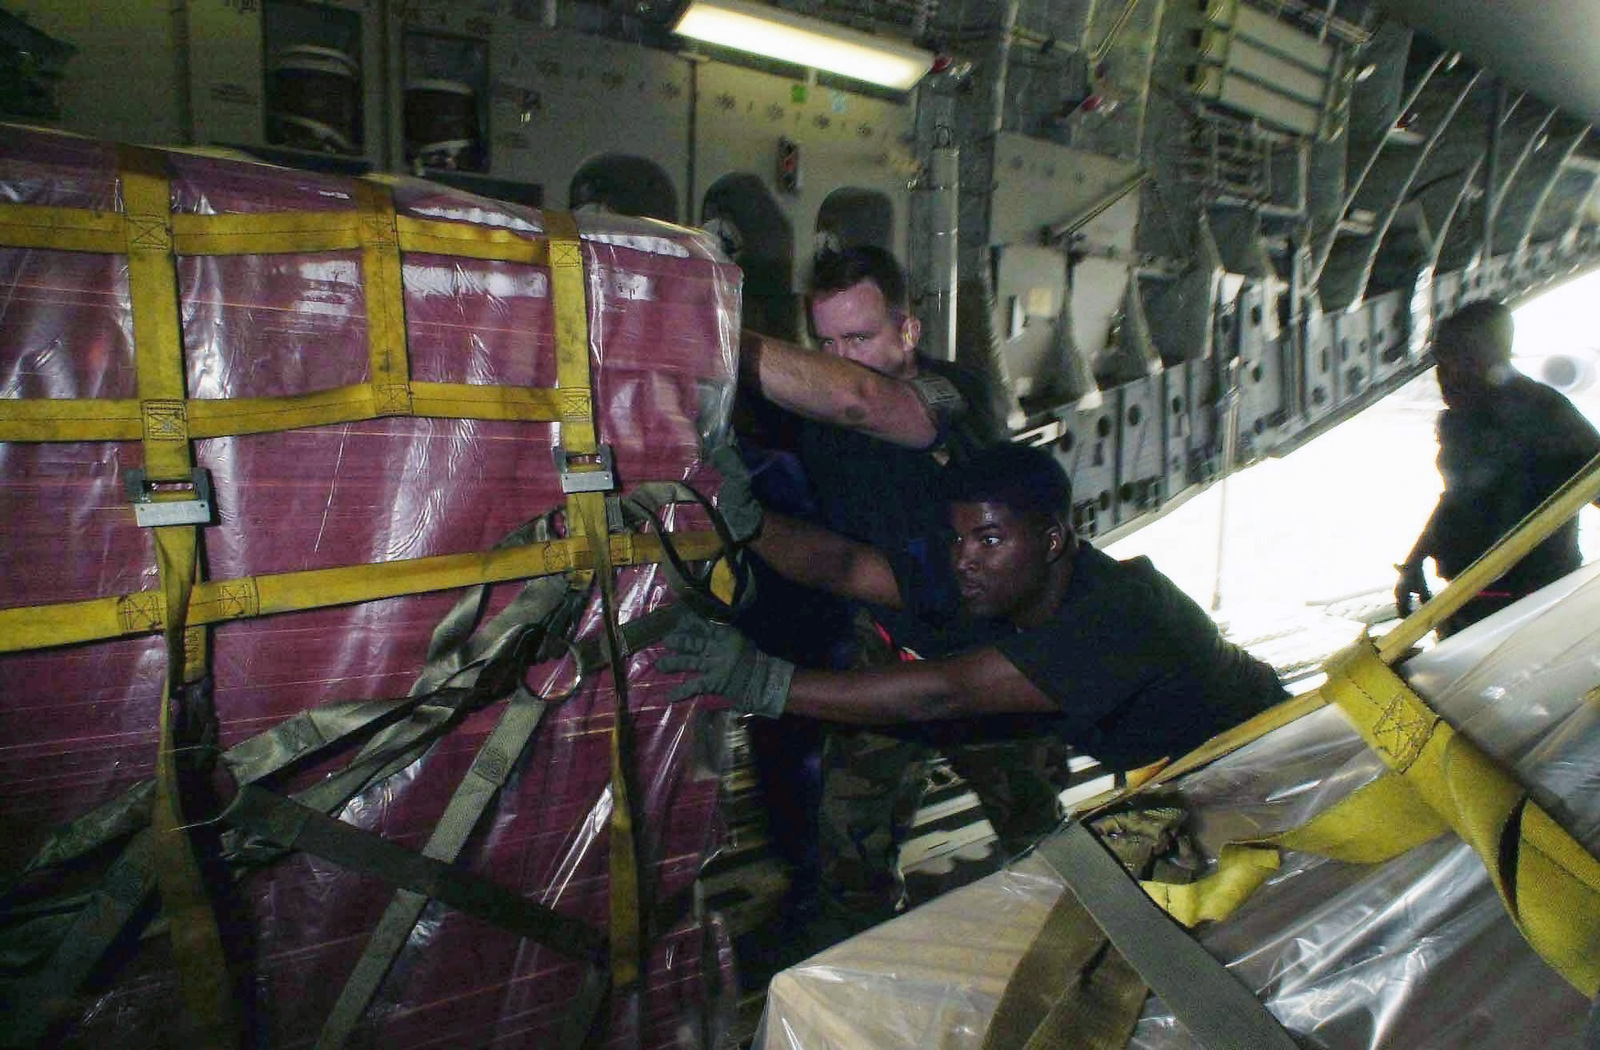 US Air Force (USAF) SENIOR AIRMAN (SRA) Lowell Pointer (left) and USAF STAFF Sergeant (SSGT) Jeffrey Mount, both assigned to the 728th Air Mobility Squadron (AMS) load palletized cargo onto a C-17A Globemaster III aircraft, while deployed at a forward location in support of Operation ENDURING FREEDOM